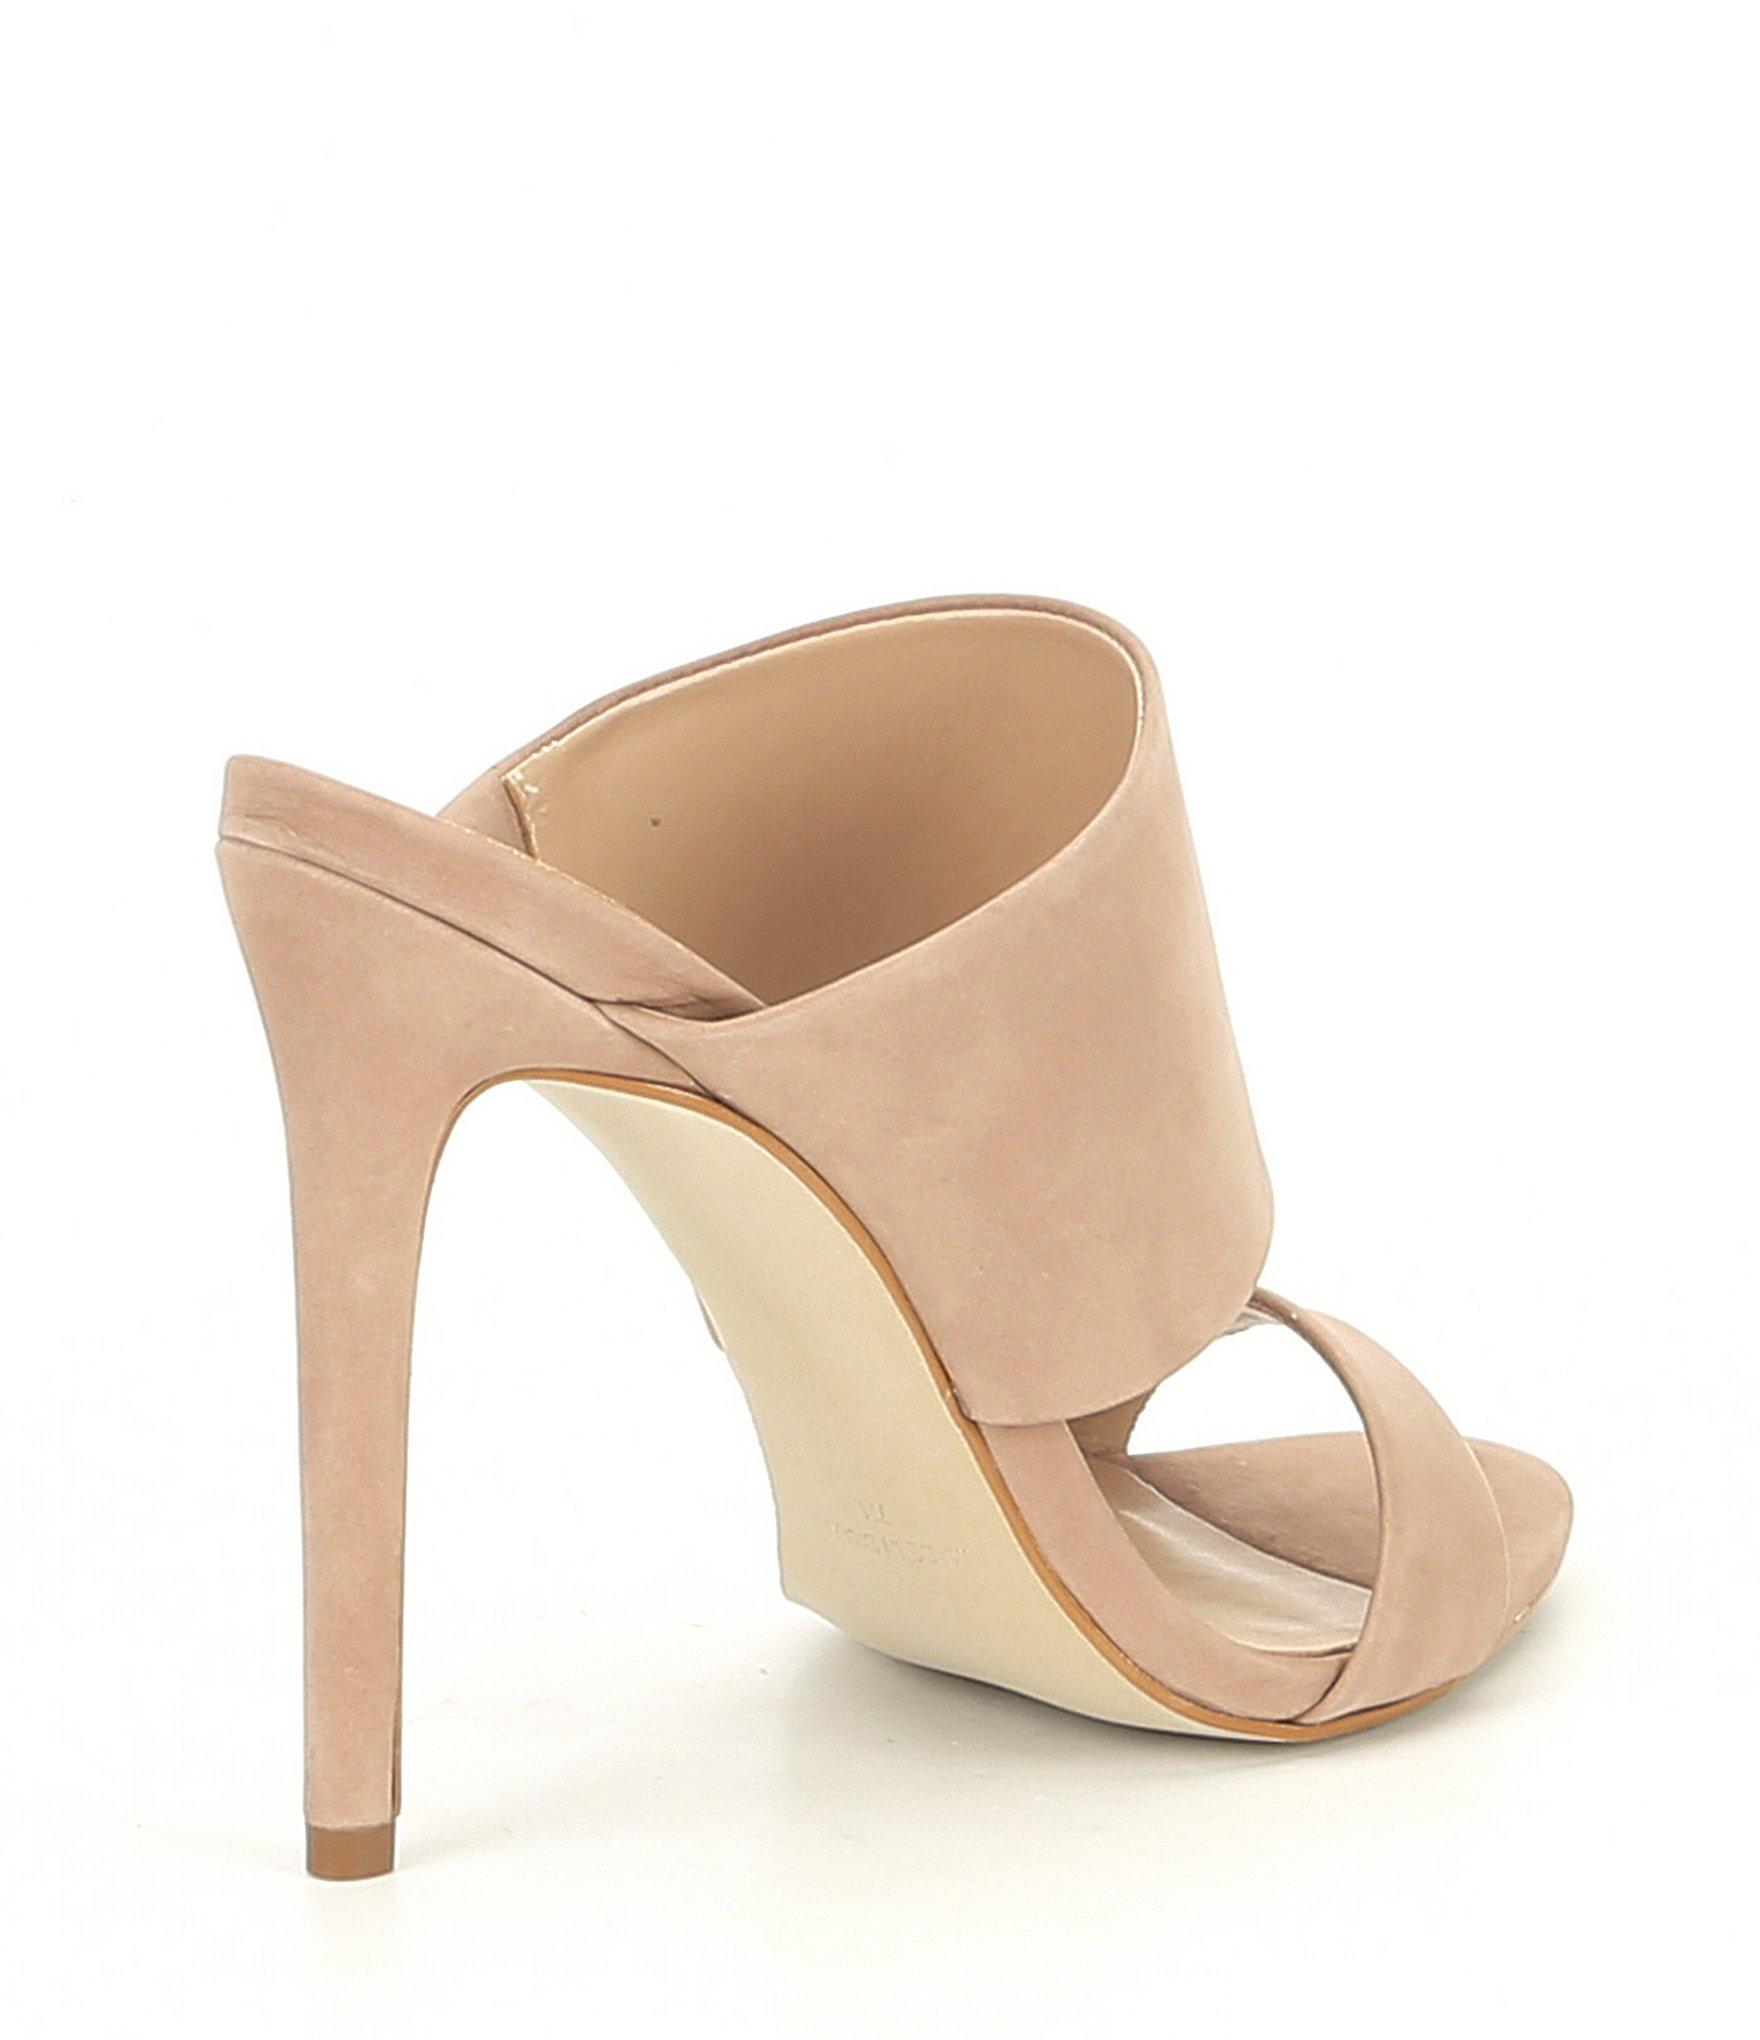 01fd7dfb697 Lyst - Steve Madden Mallory Nubuck Stiletto Sandals in Natural